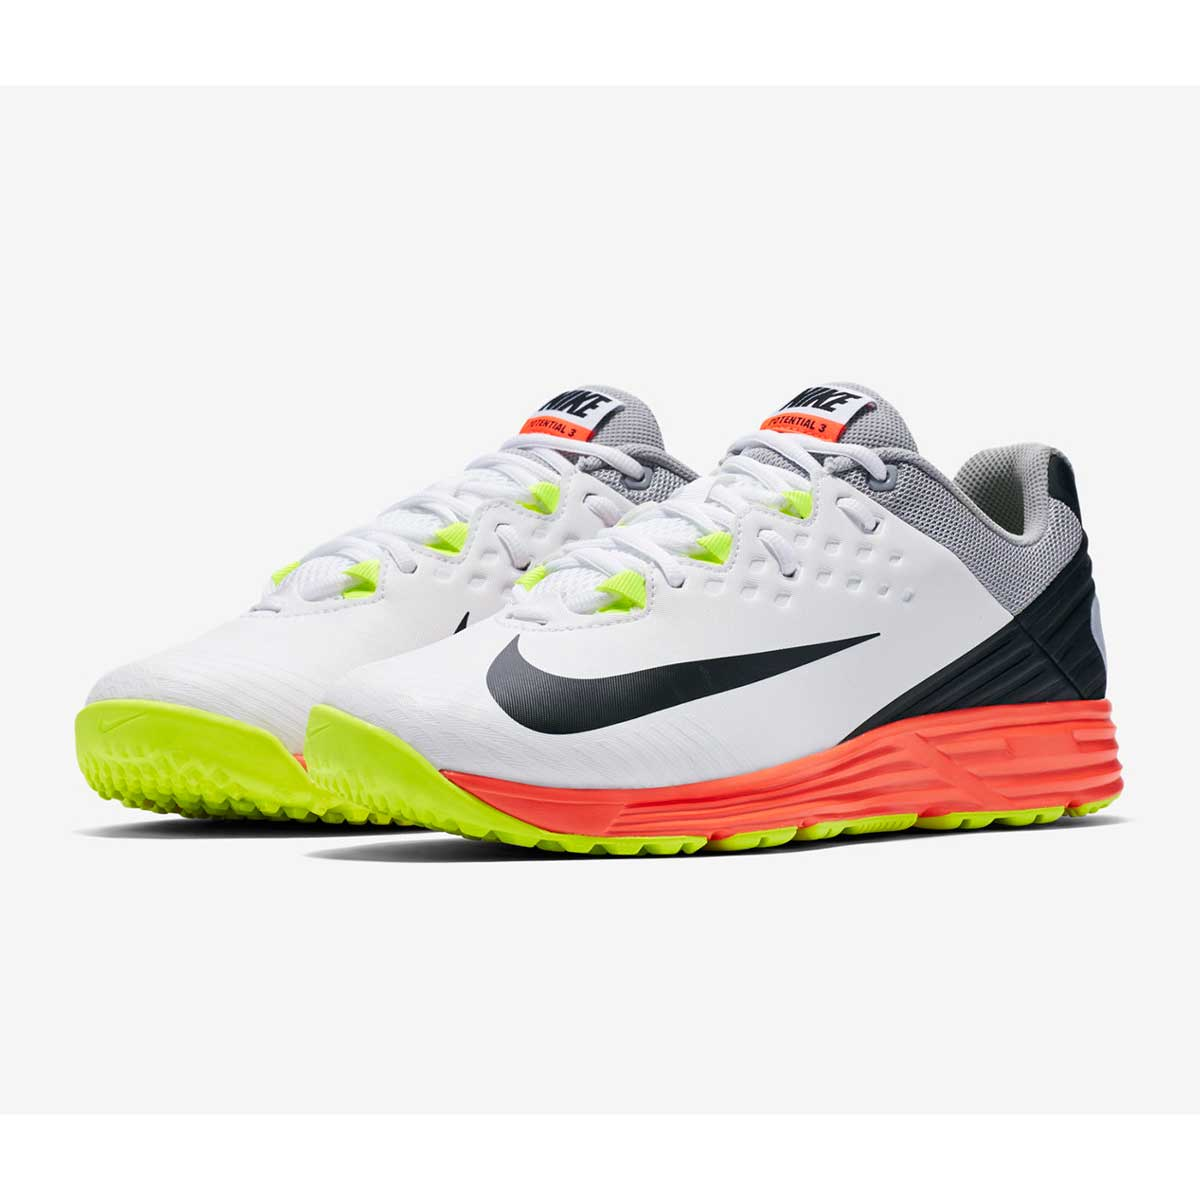 online retailer 2b4e3 e8558 Buy Nike Potential 3 Cricket Shoes Online India  Nike Cricket Shoes